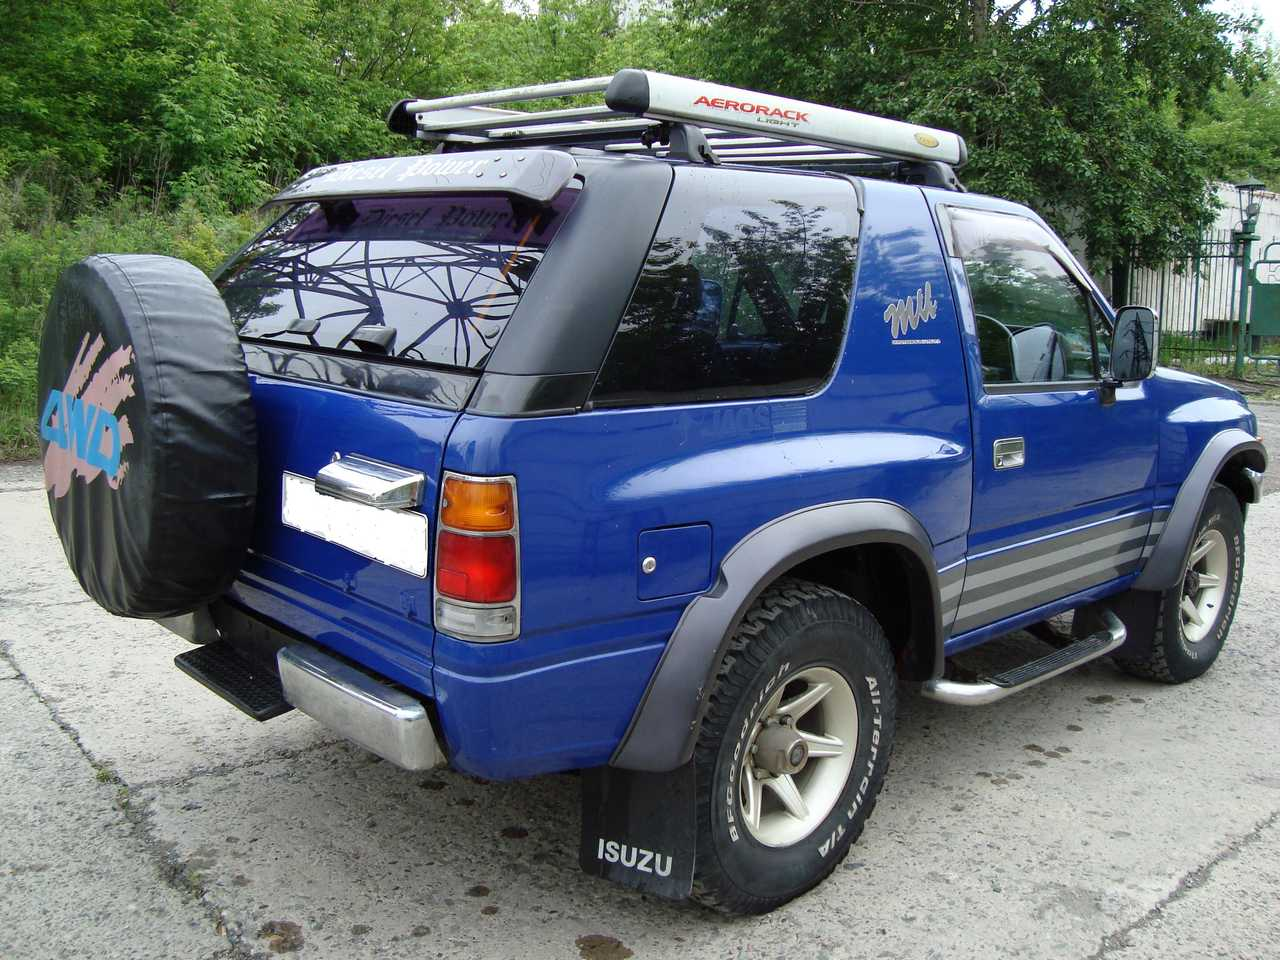 1991 isuzu mu for sale  2800cc   diesel  manual for sale 1996 Honda Passport Parts 2012 Honda Passport